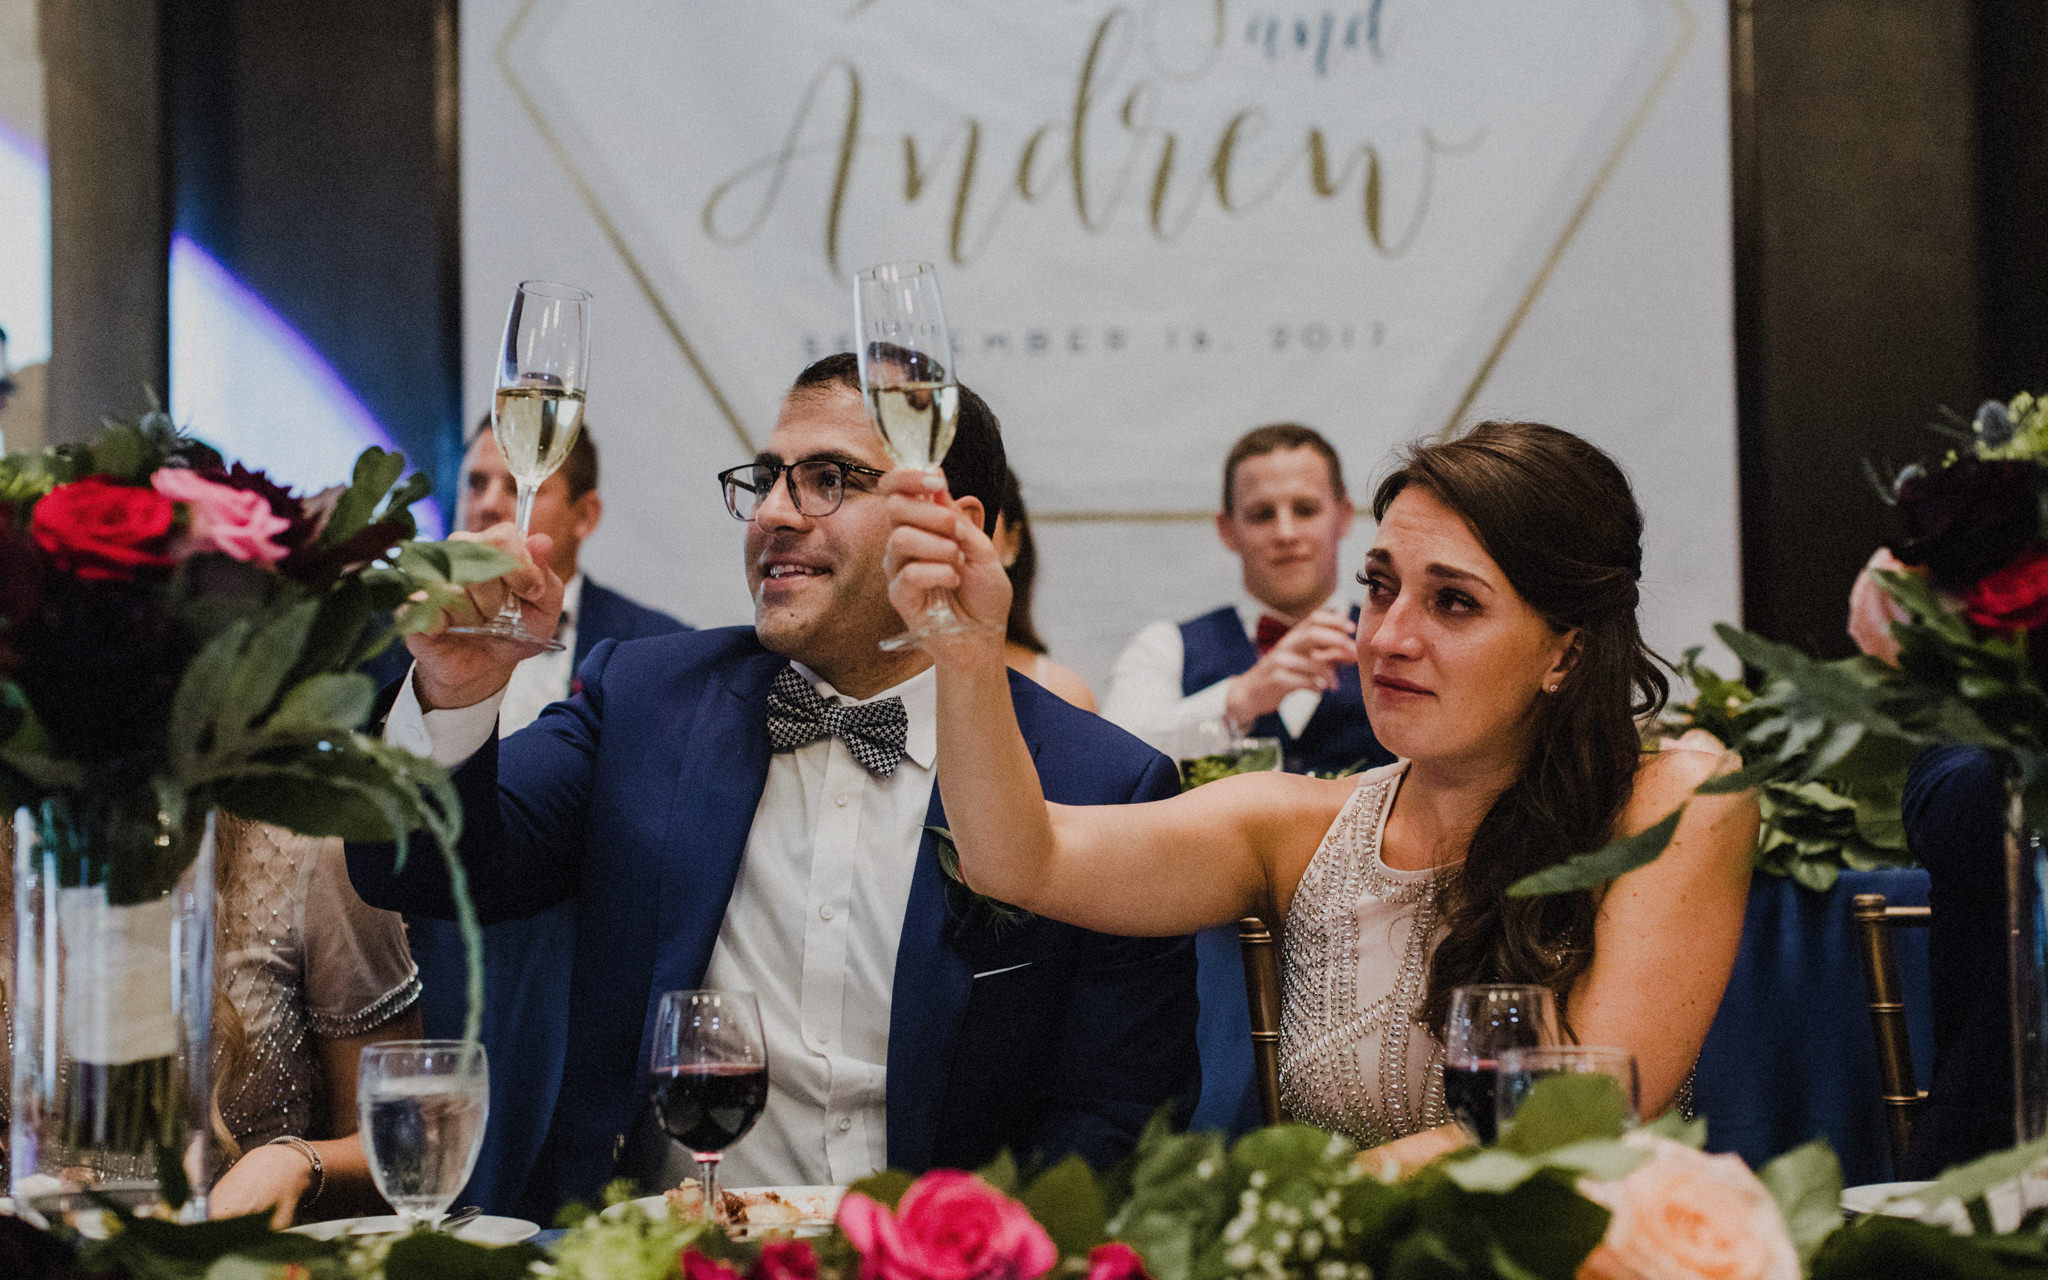 bridal party toasts at reception